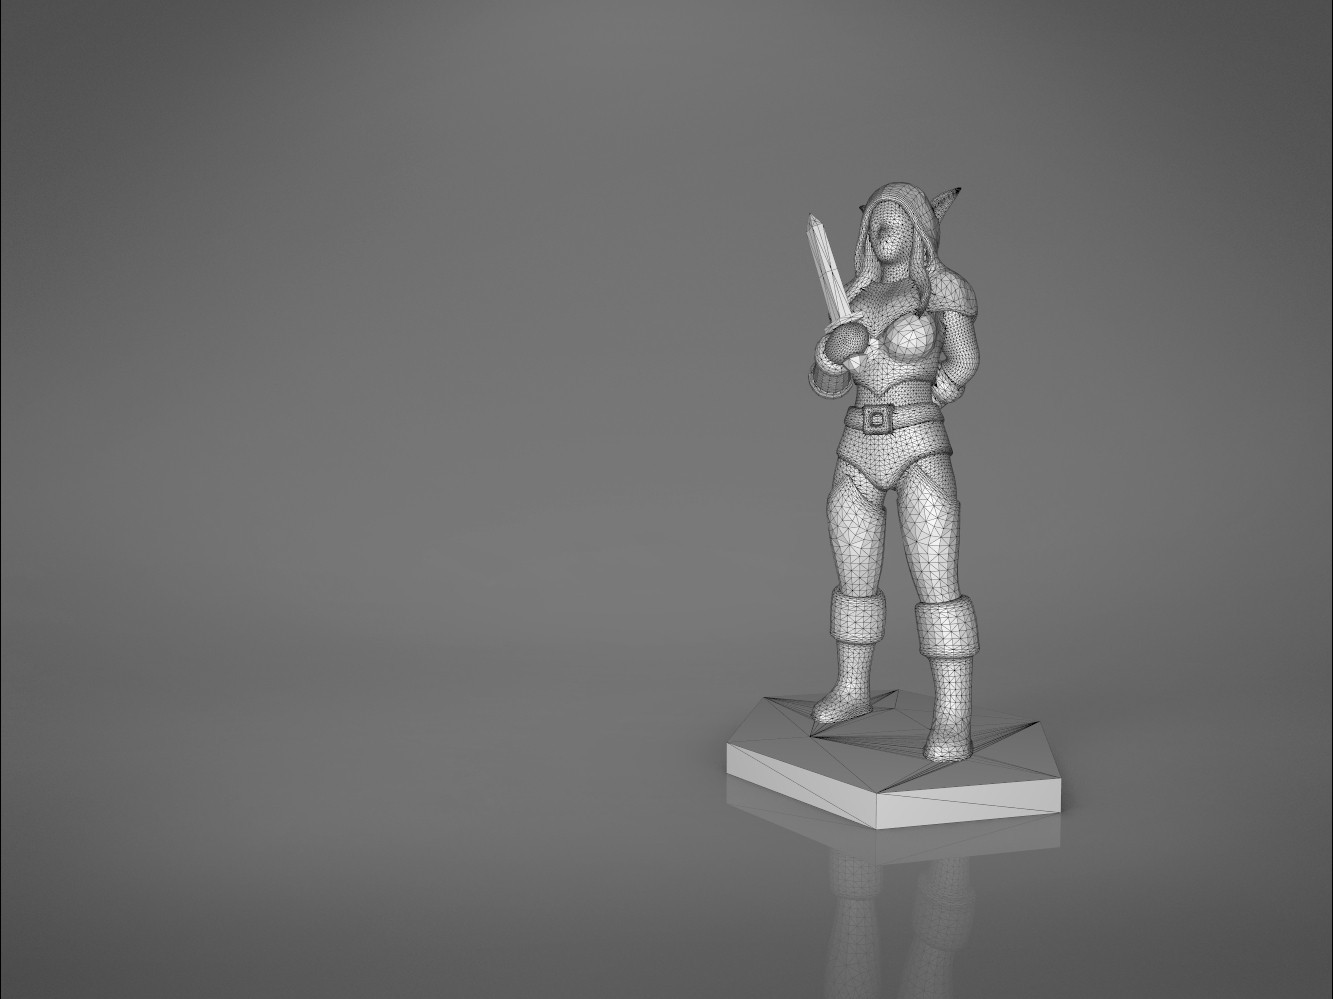 Rogue_2-main_render.457.jpg Download STL file ELF ROGUE FEMALE CHARACTER GAME FIGURES 3D print model • 3D printer object, 3D-mon